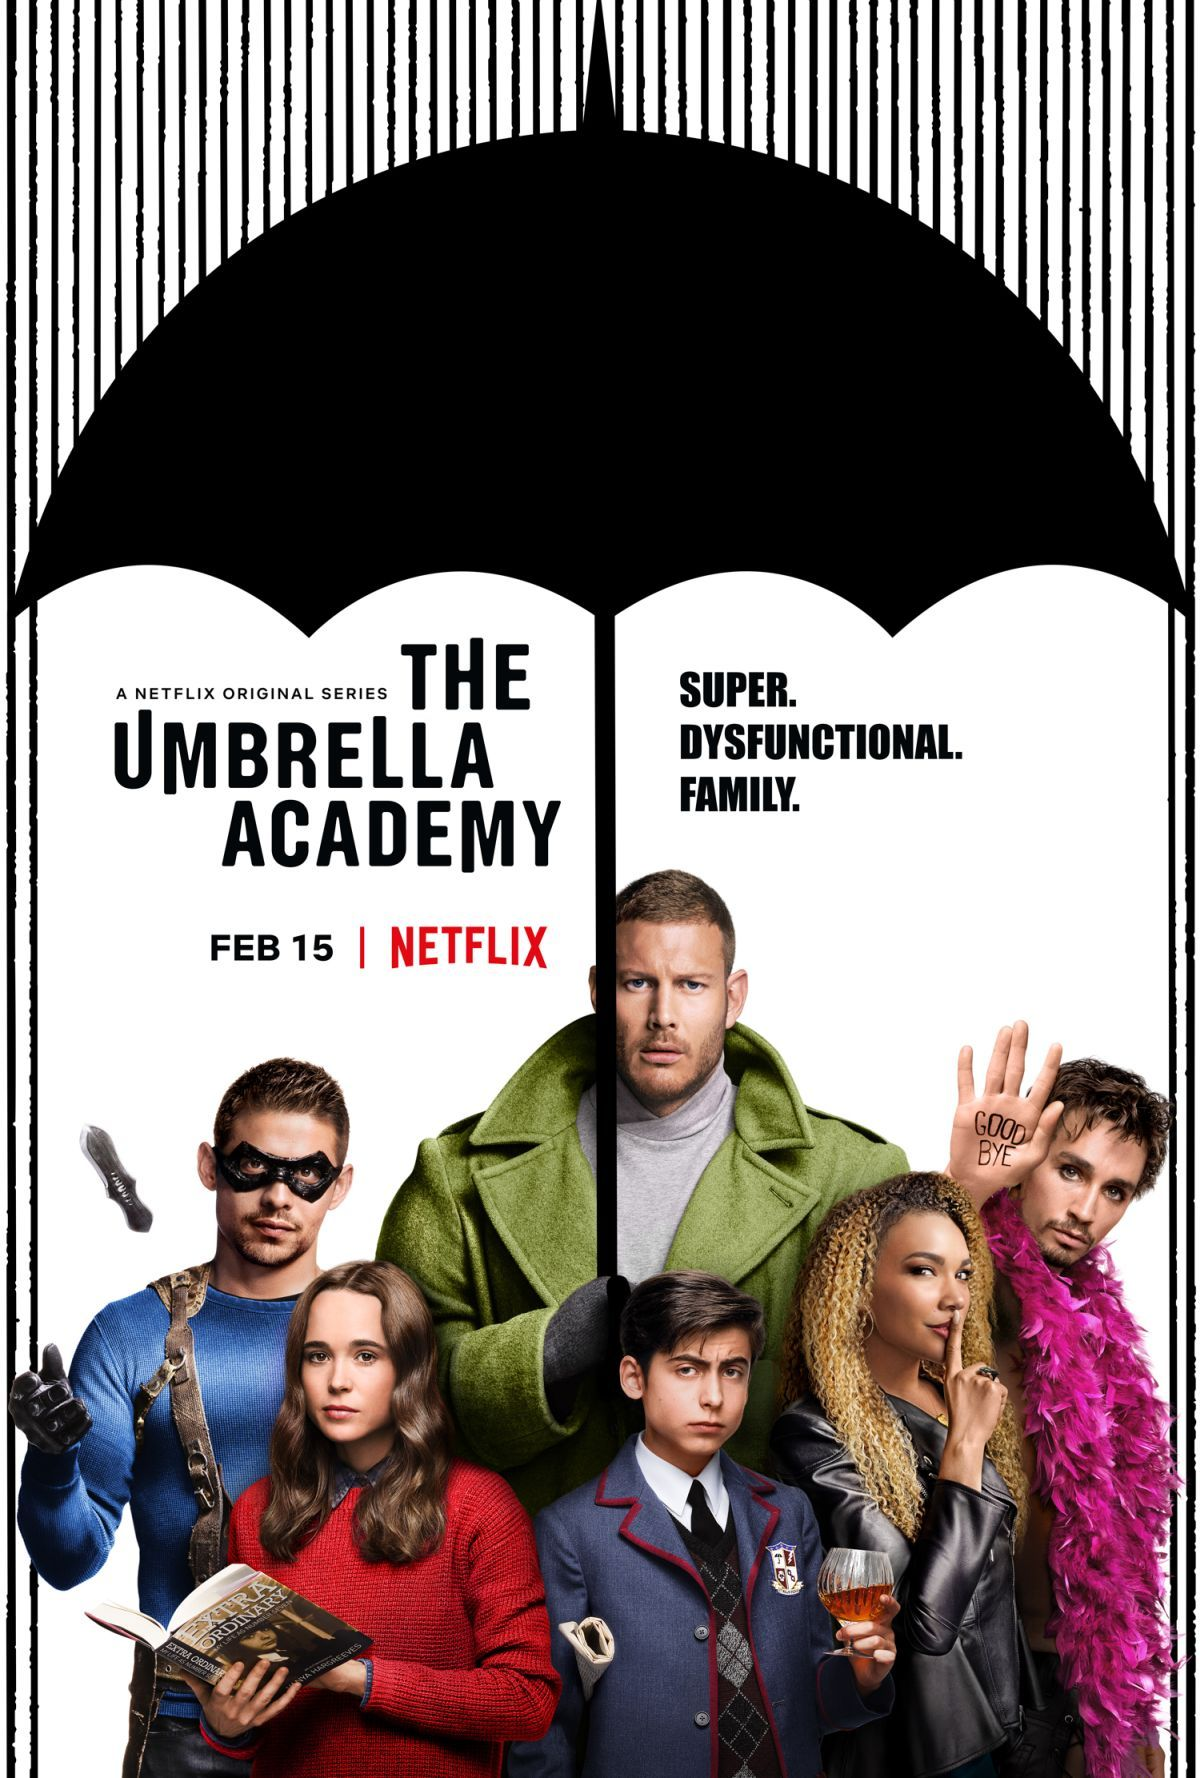 The Umbrella Academy S01 E07 Cut